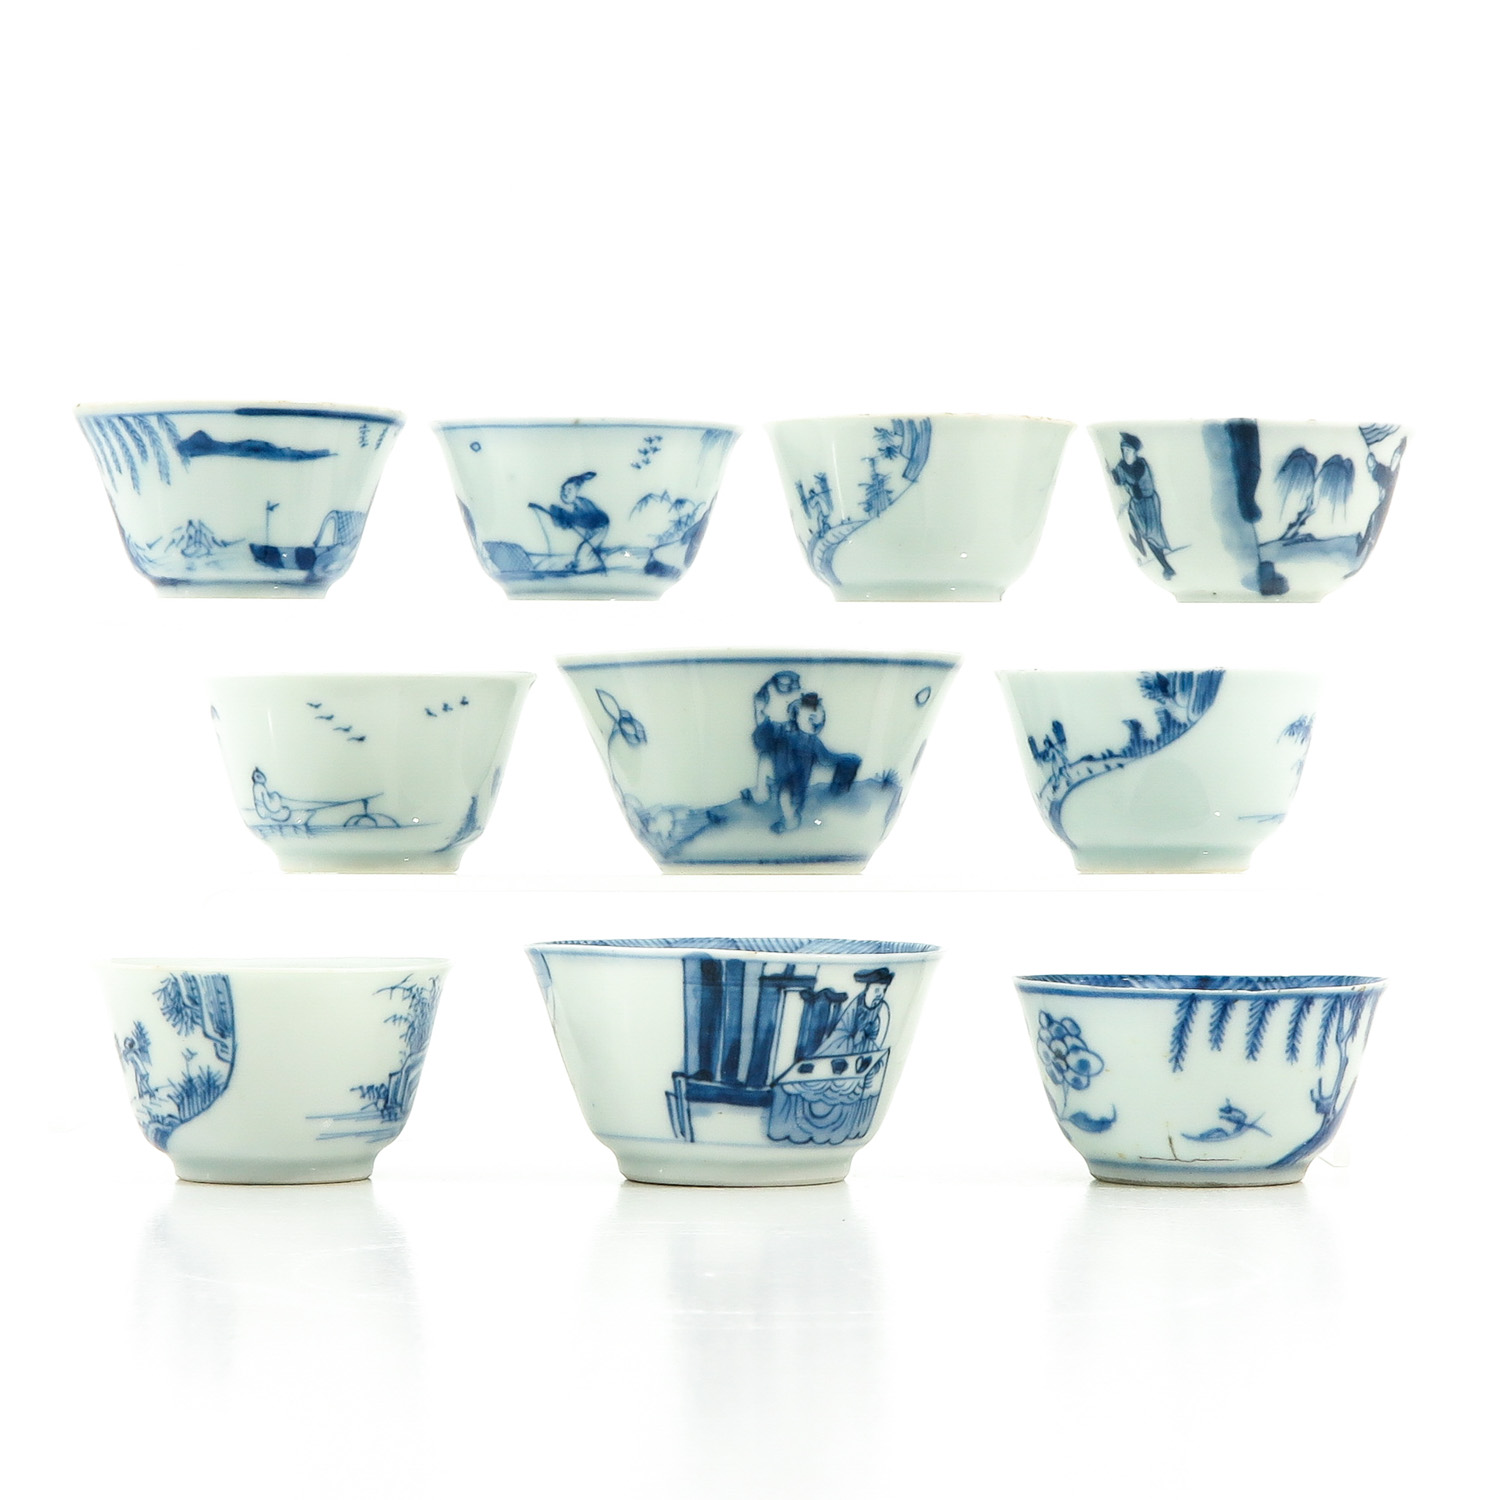 A Collection of 10 Blue and White Cups - Image 4 of 10